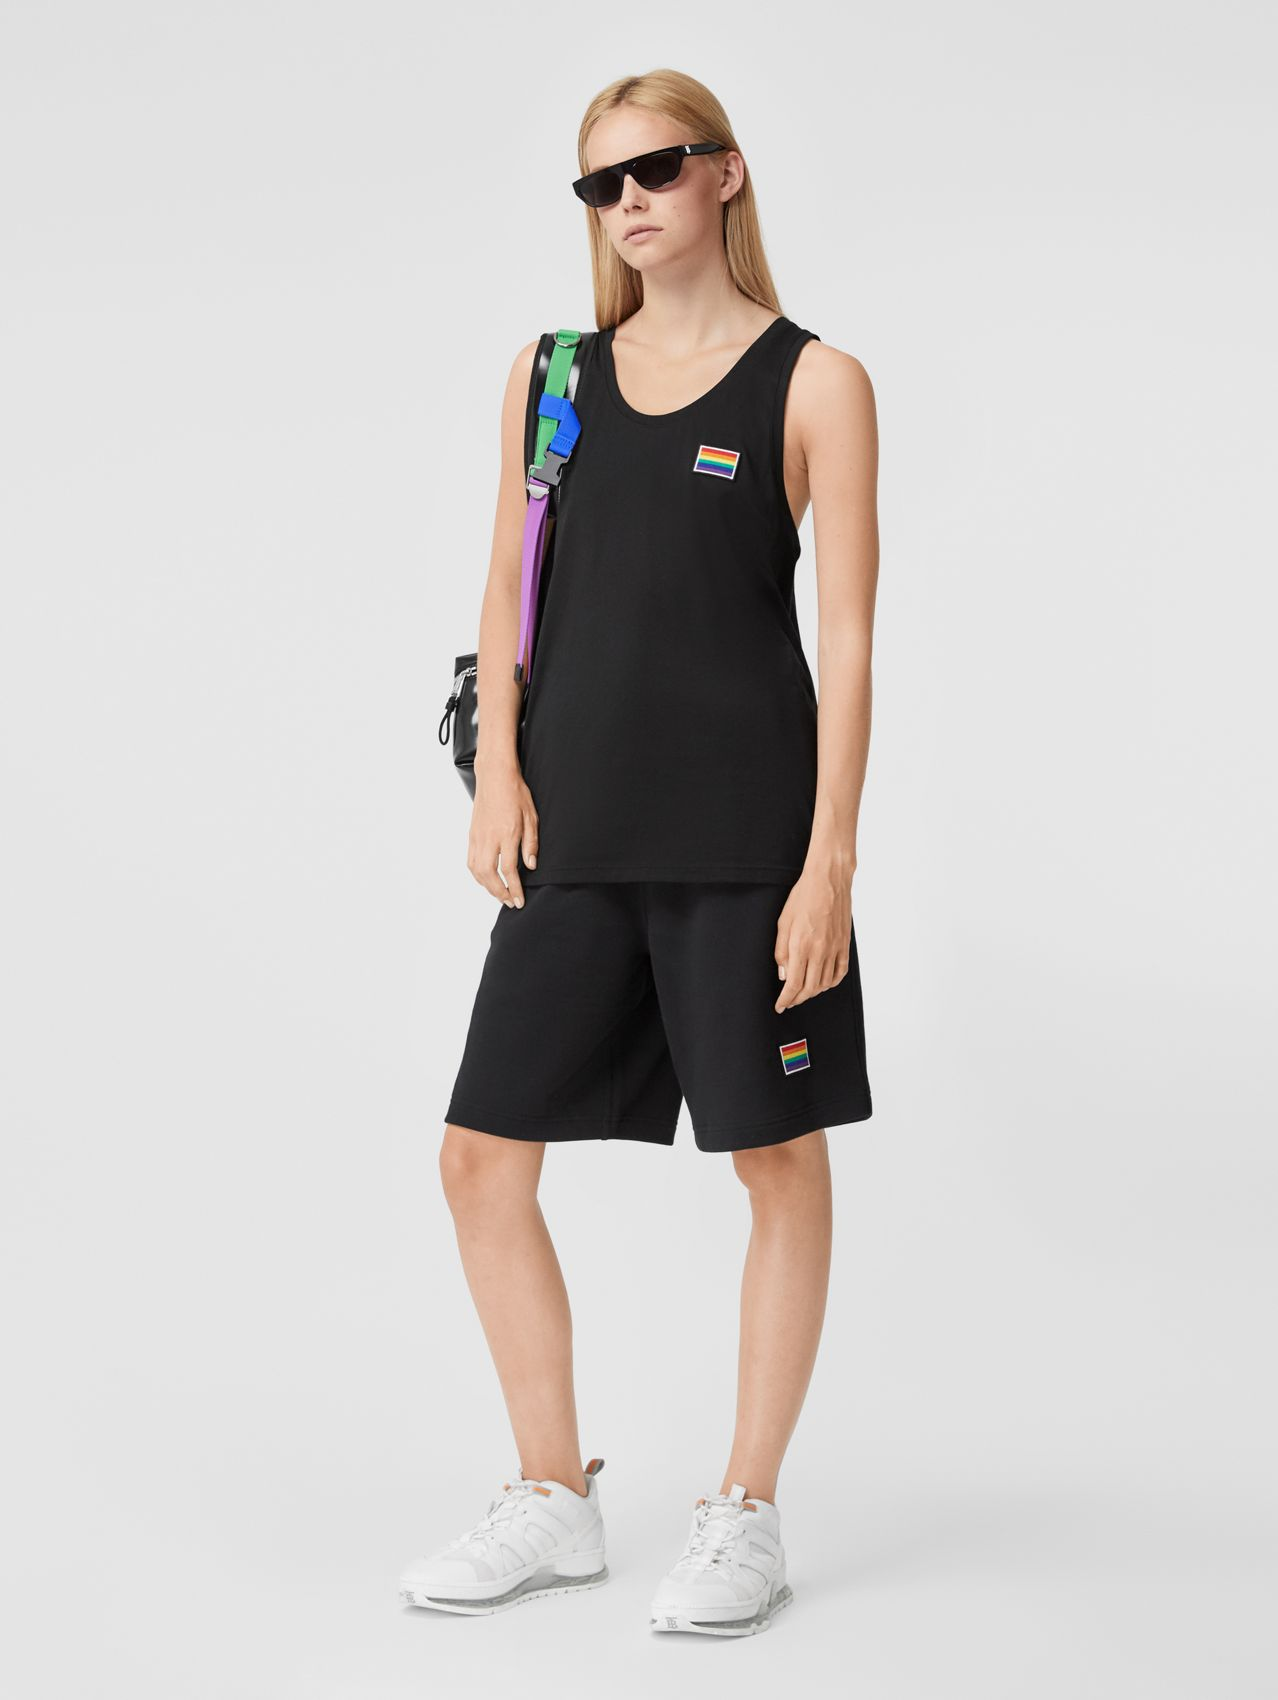 Rainbow Appliqué Cotton Drawcord Shorts – Unisex (Black)